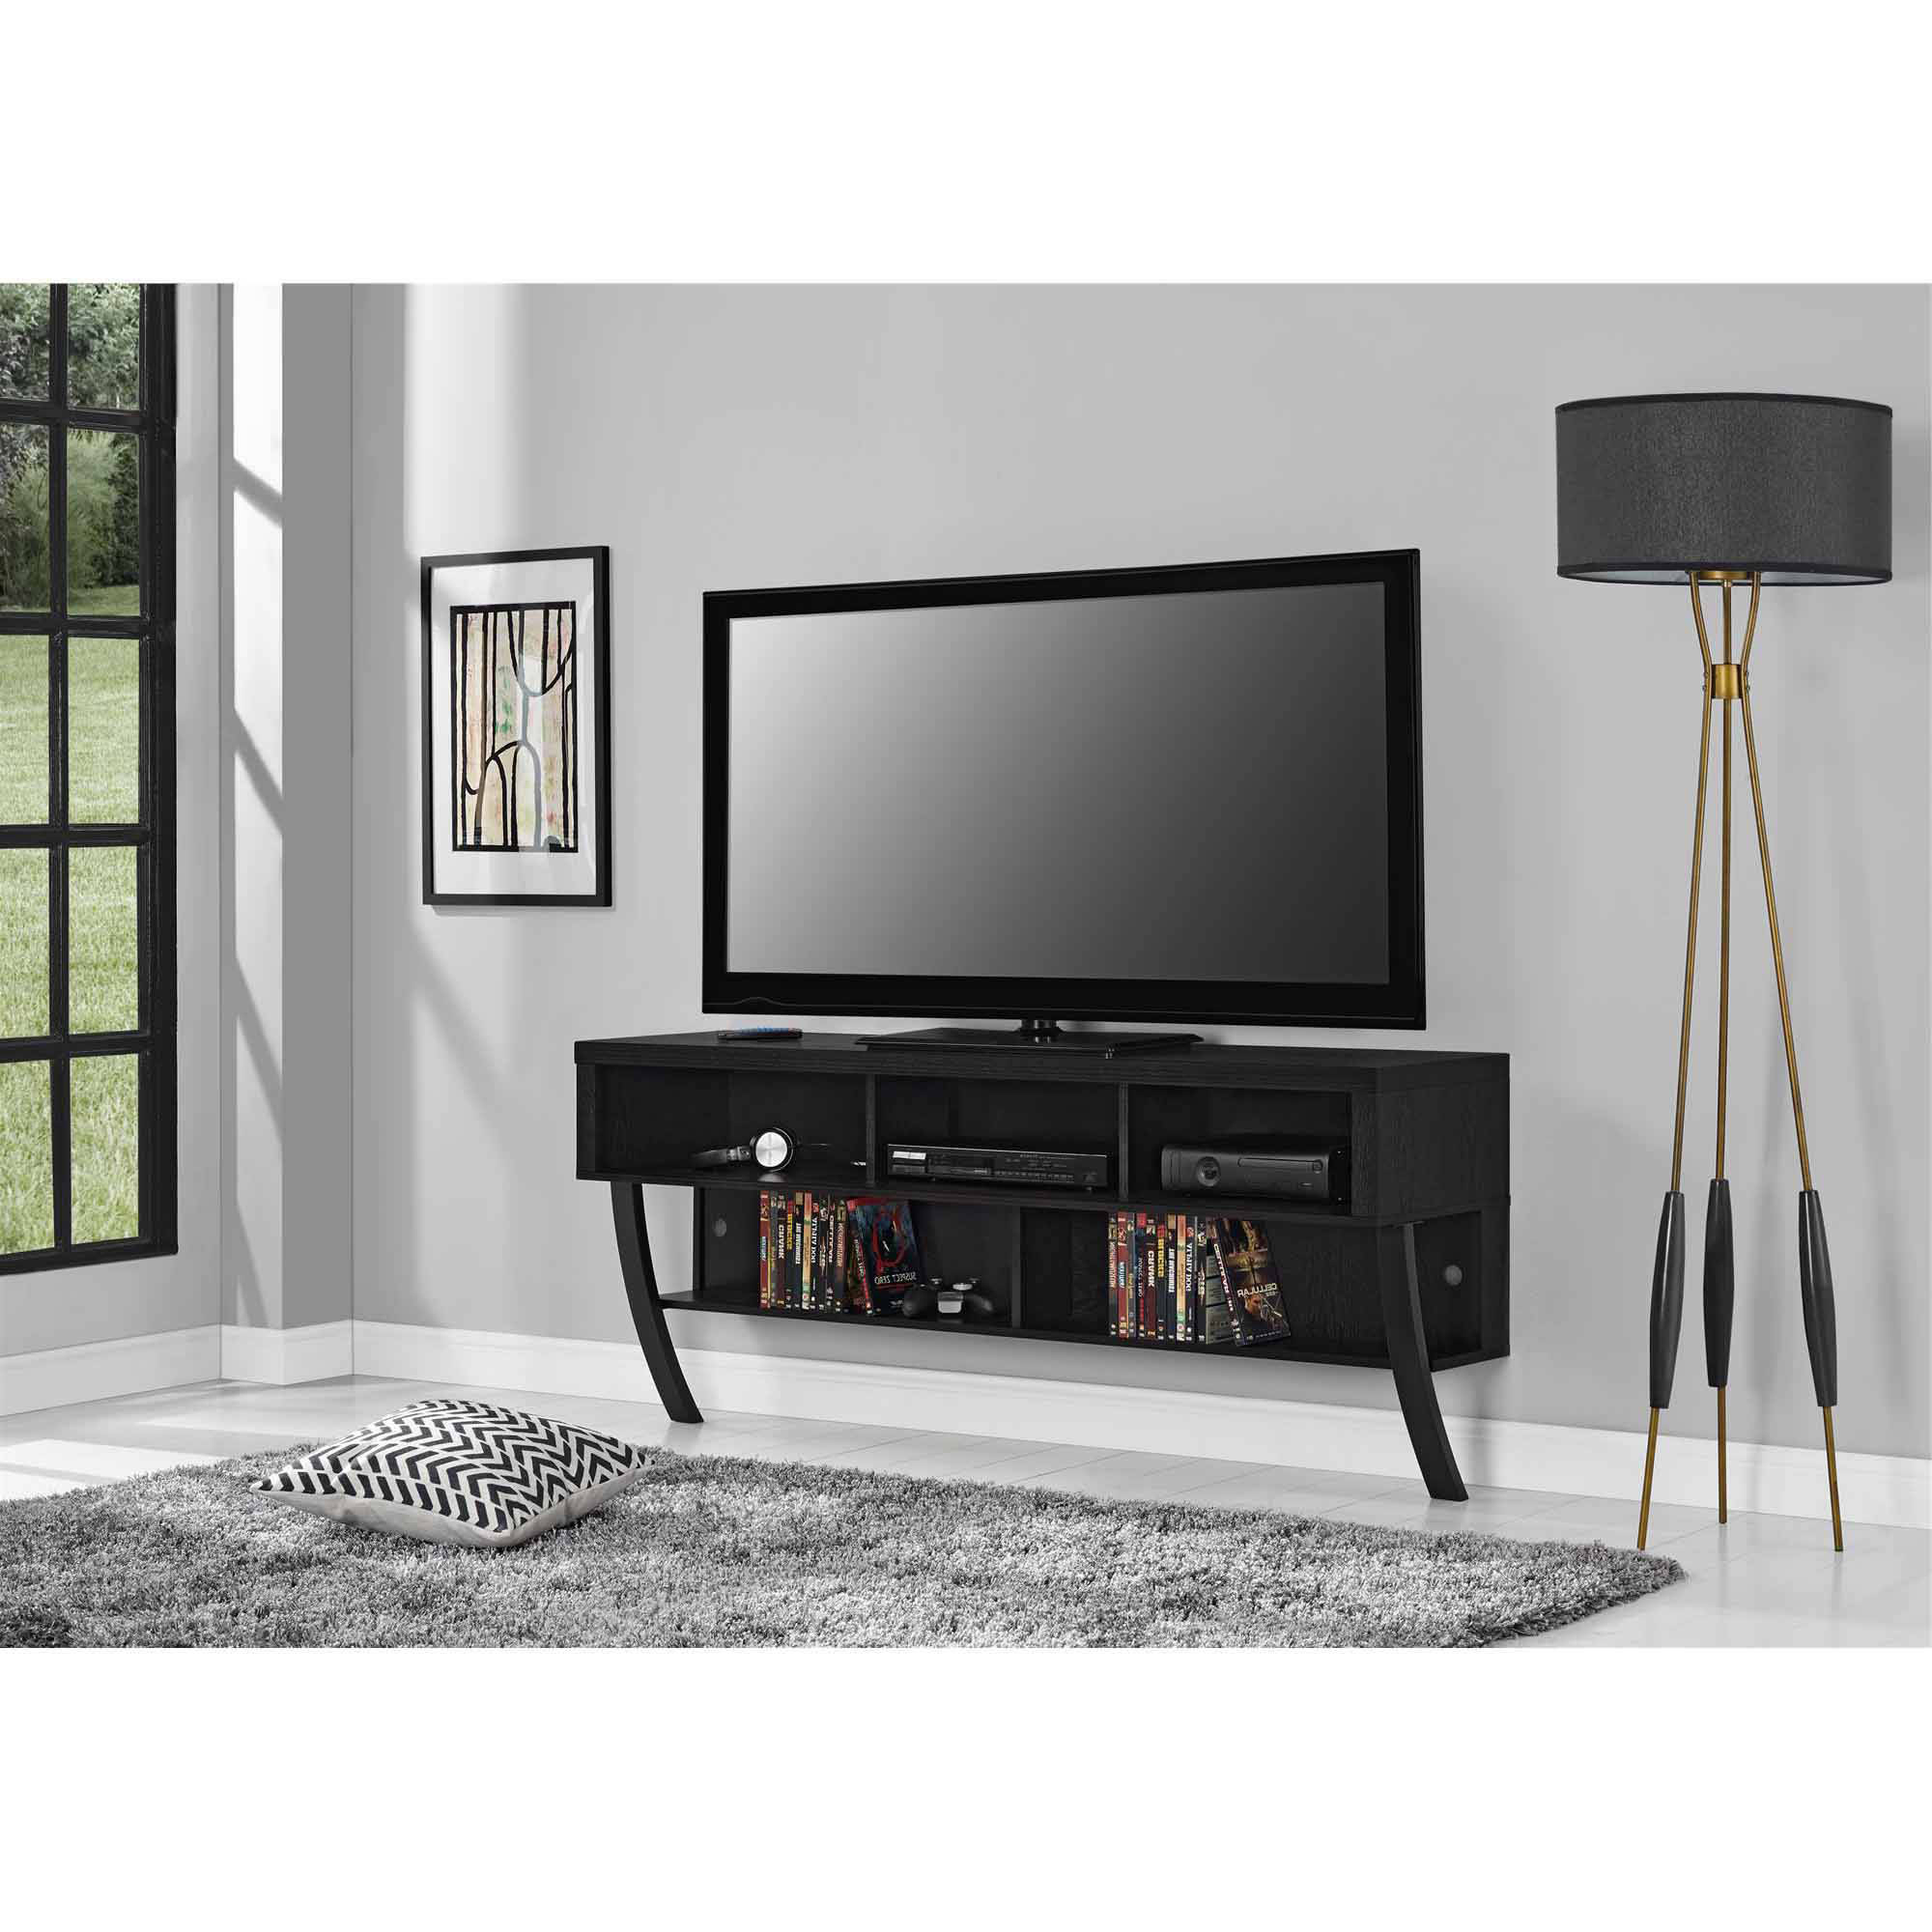 "Wall Mounted Tv Racks Within Well Liked Altra Asher Wall Mounted 65"" Tv Stand, Black Oak – Walmart (Gallery 1 of 20)"